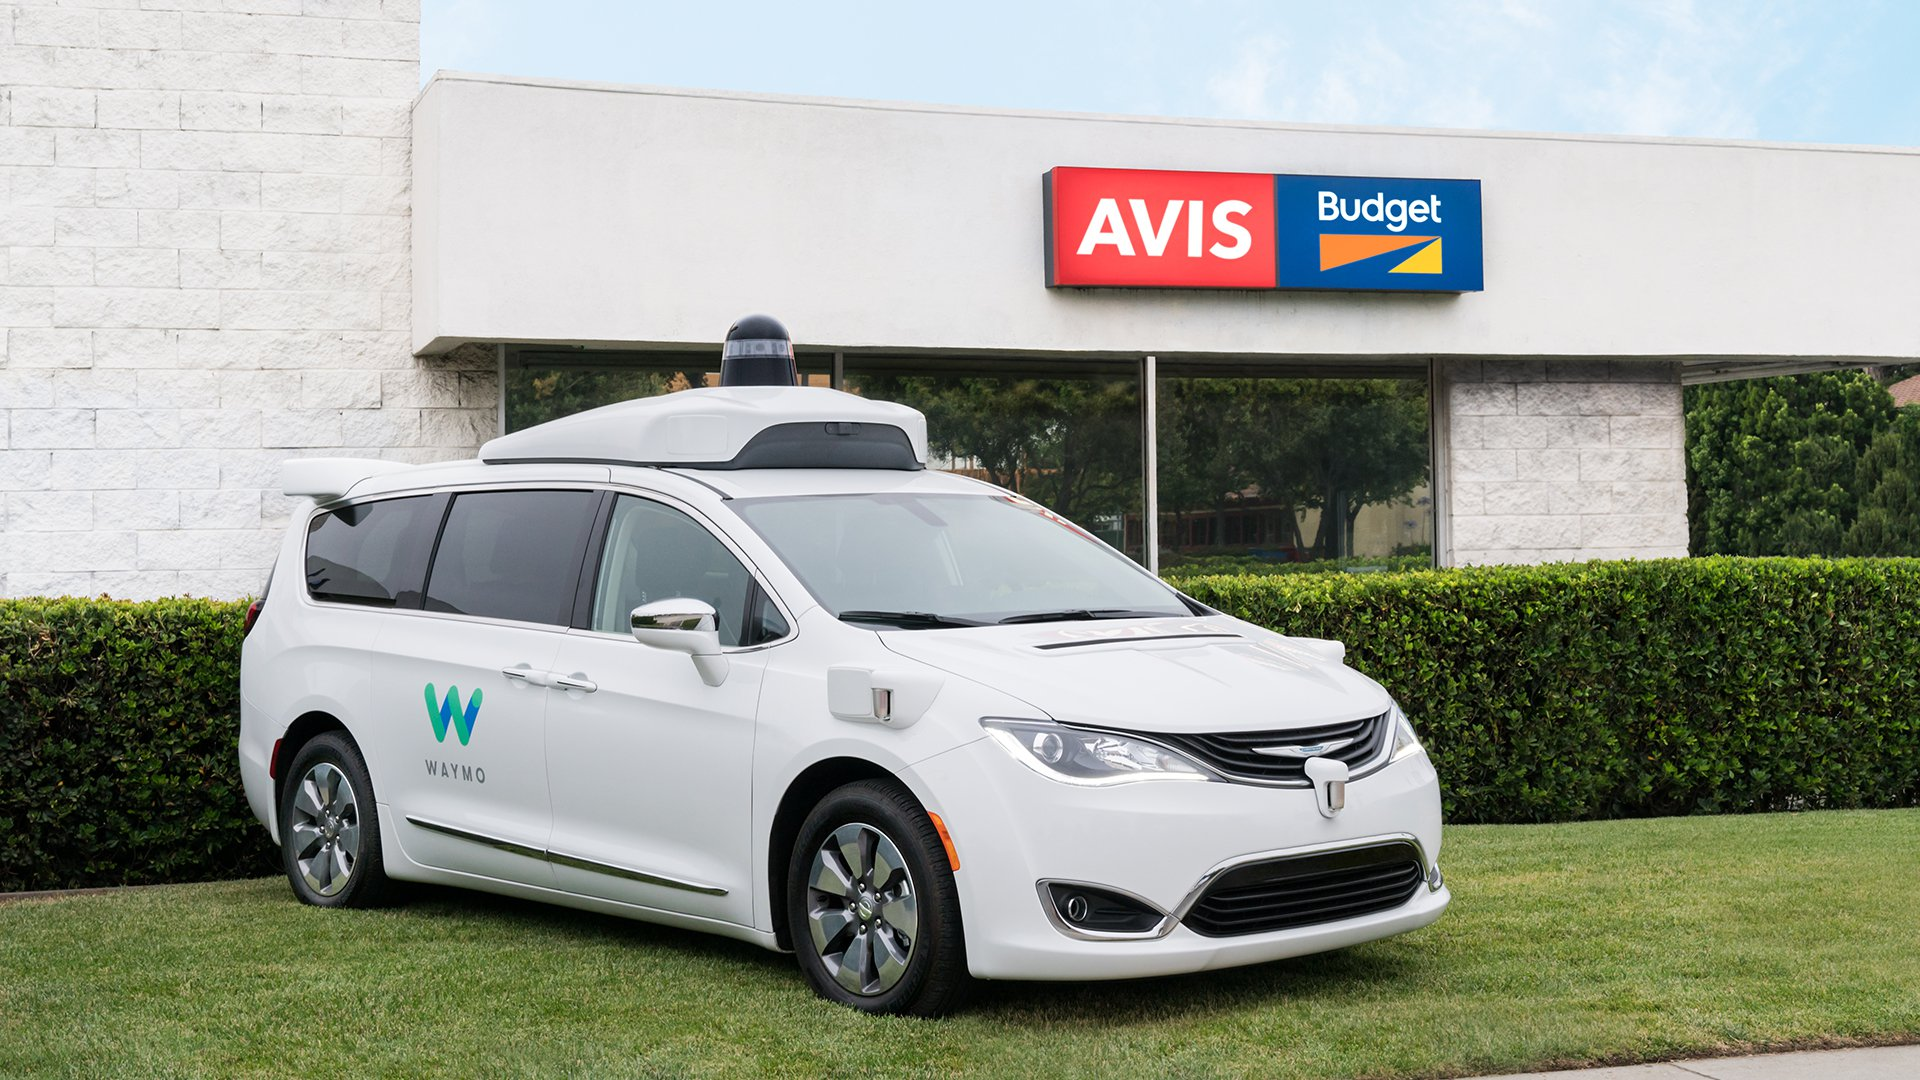 avis tries out connected wireless fleet of cars in kansas city the drive